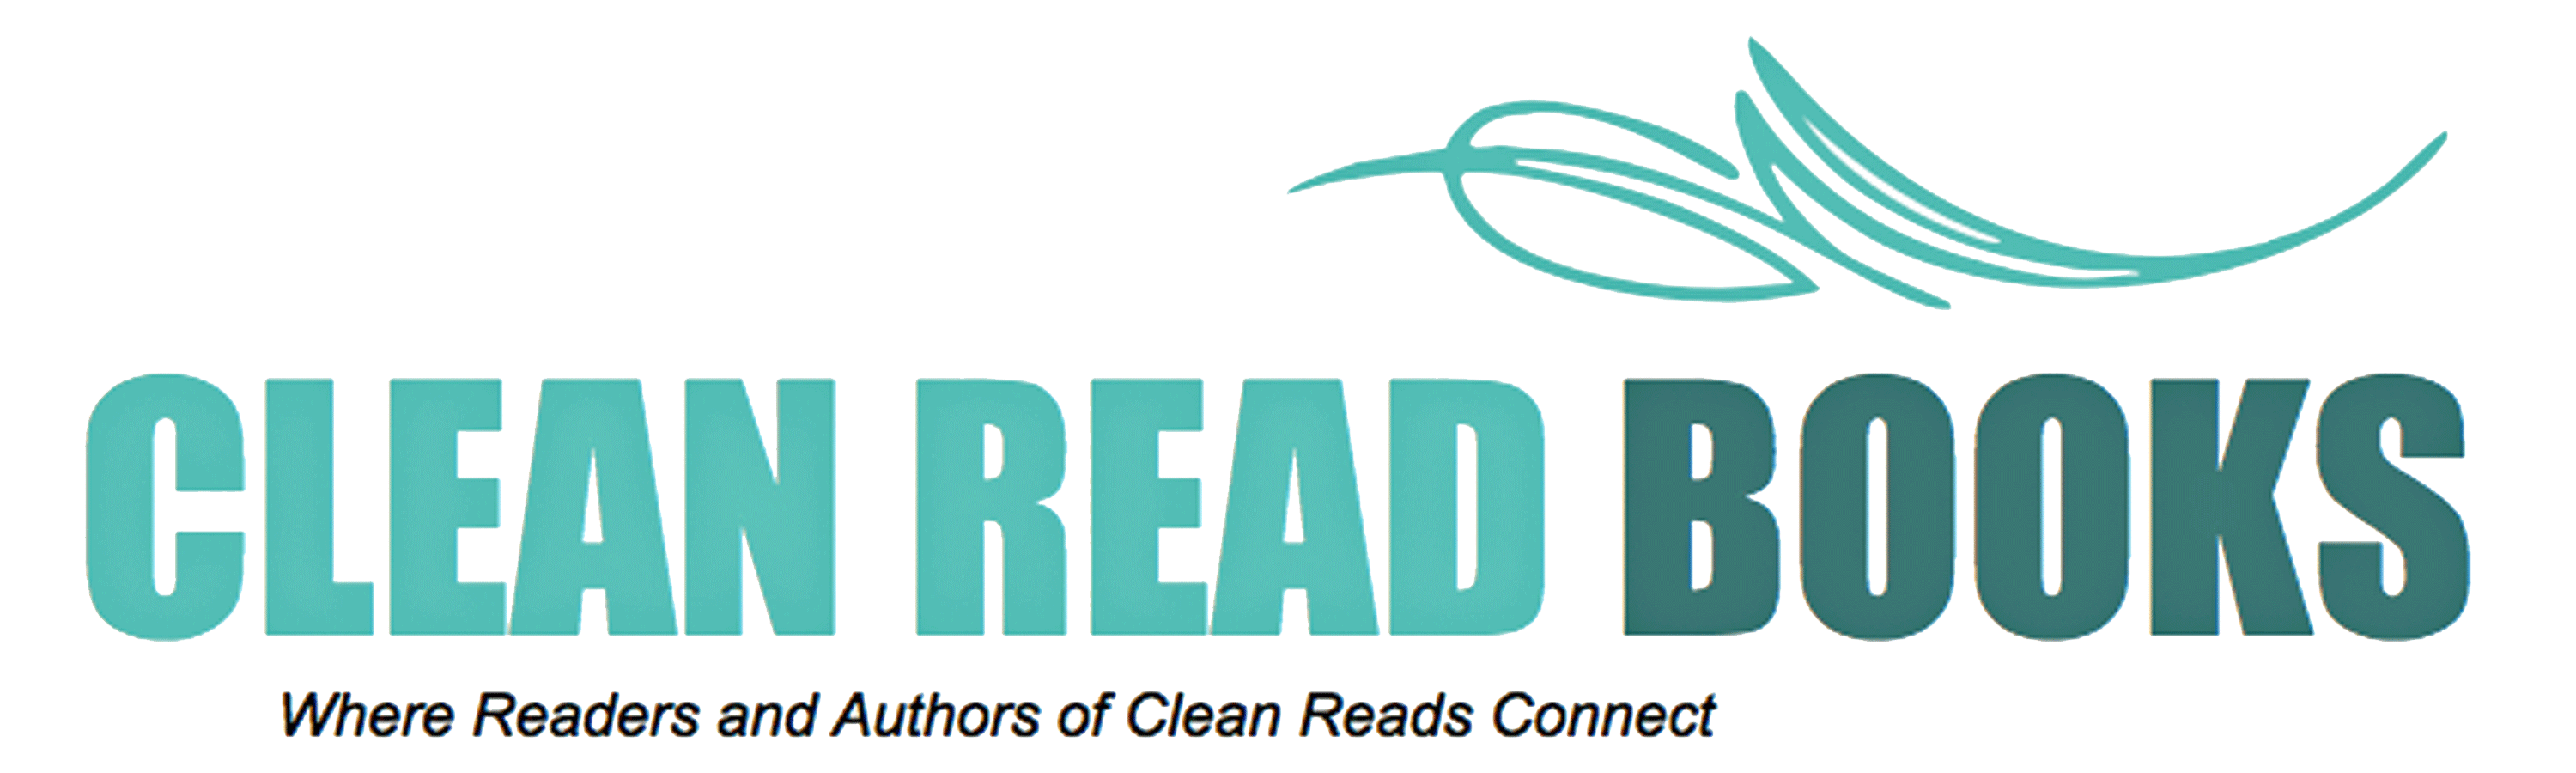 clean read books, where authors and readers of clean reads connect